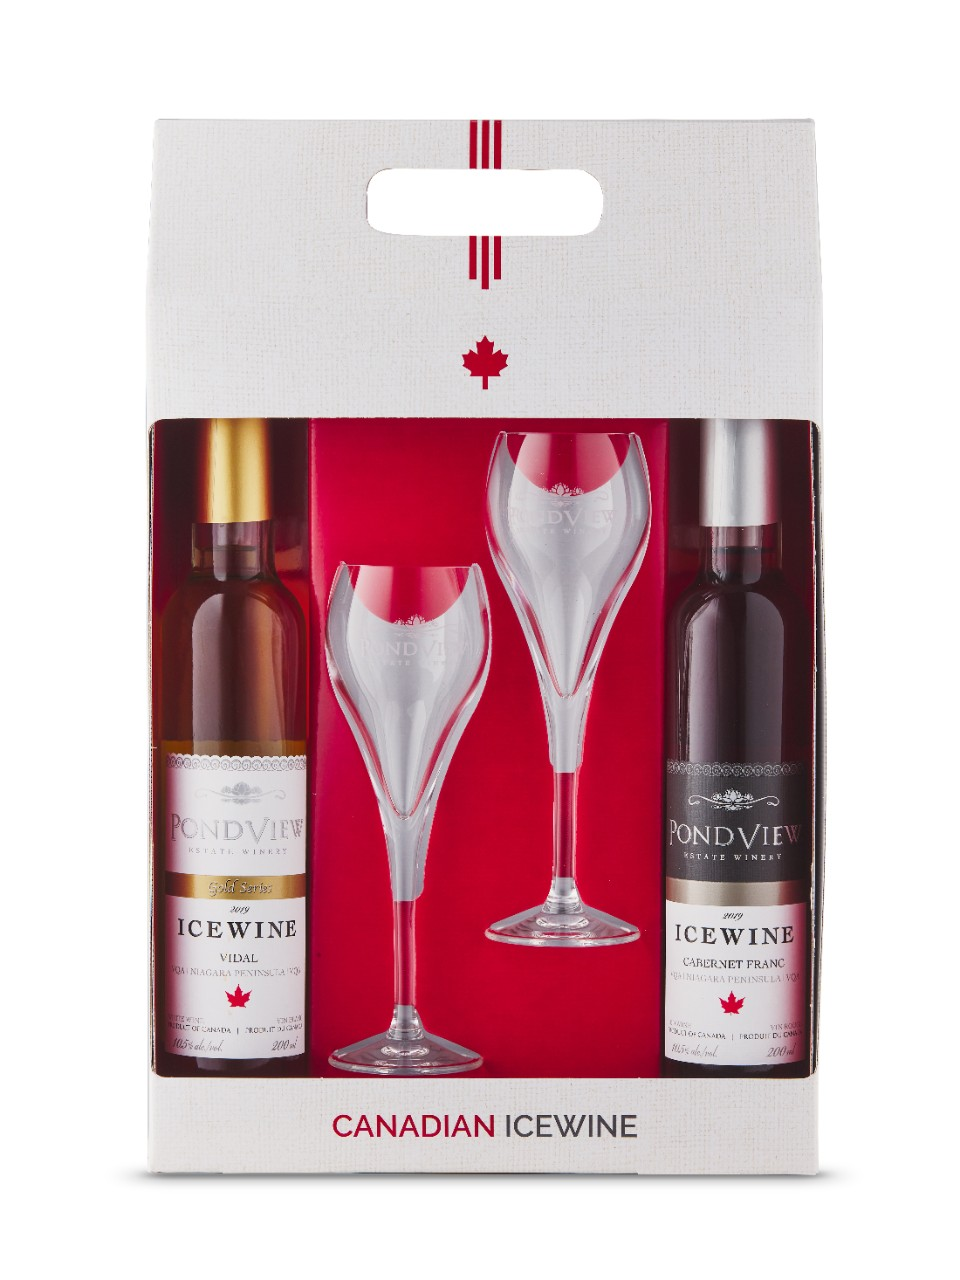 Image for Pondview Icewine Duo (Vidal 2015 & Cabernet Franc 2015) 2015 from LCBO